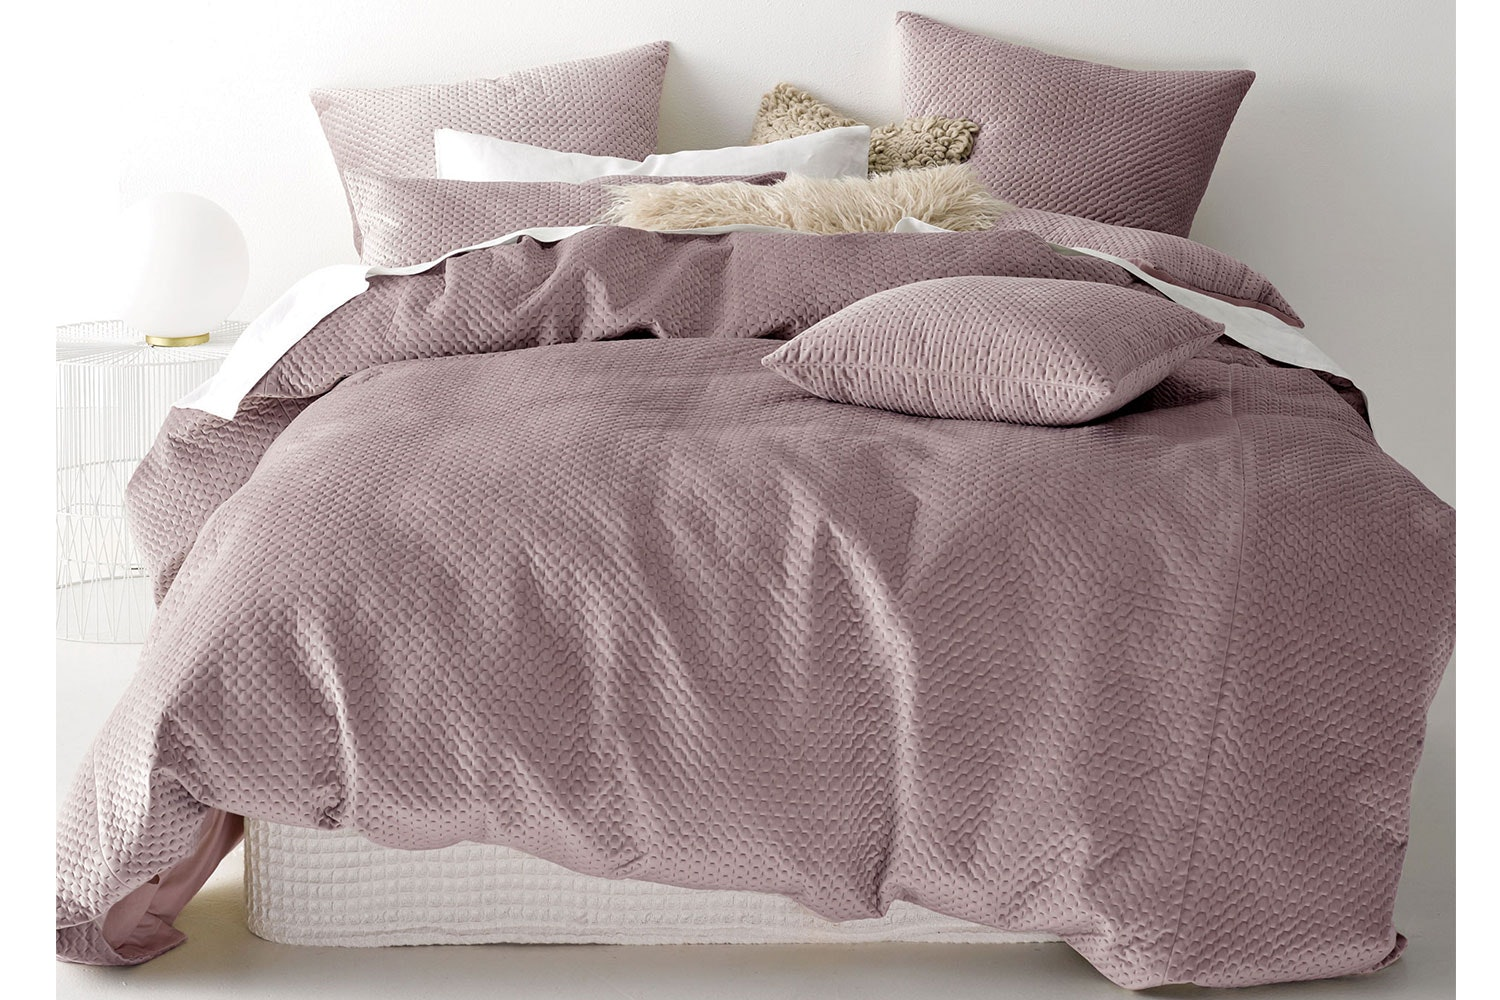 Anya Blush Duvet Cover Set by Savona